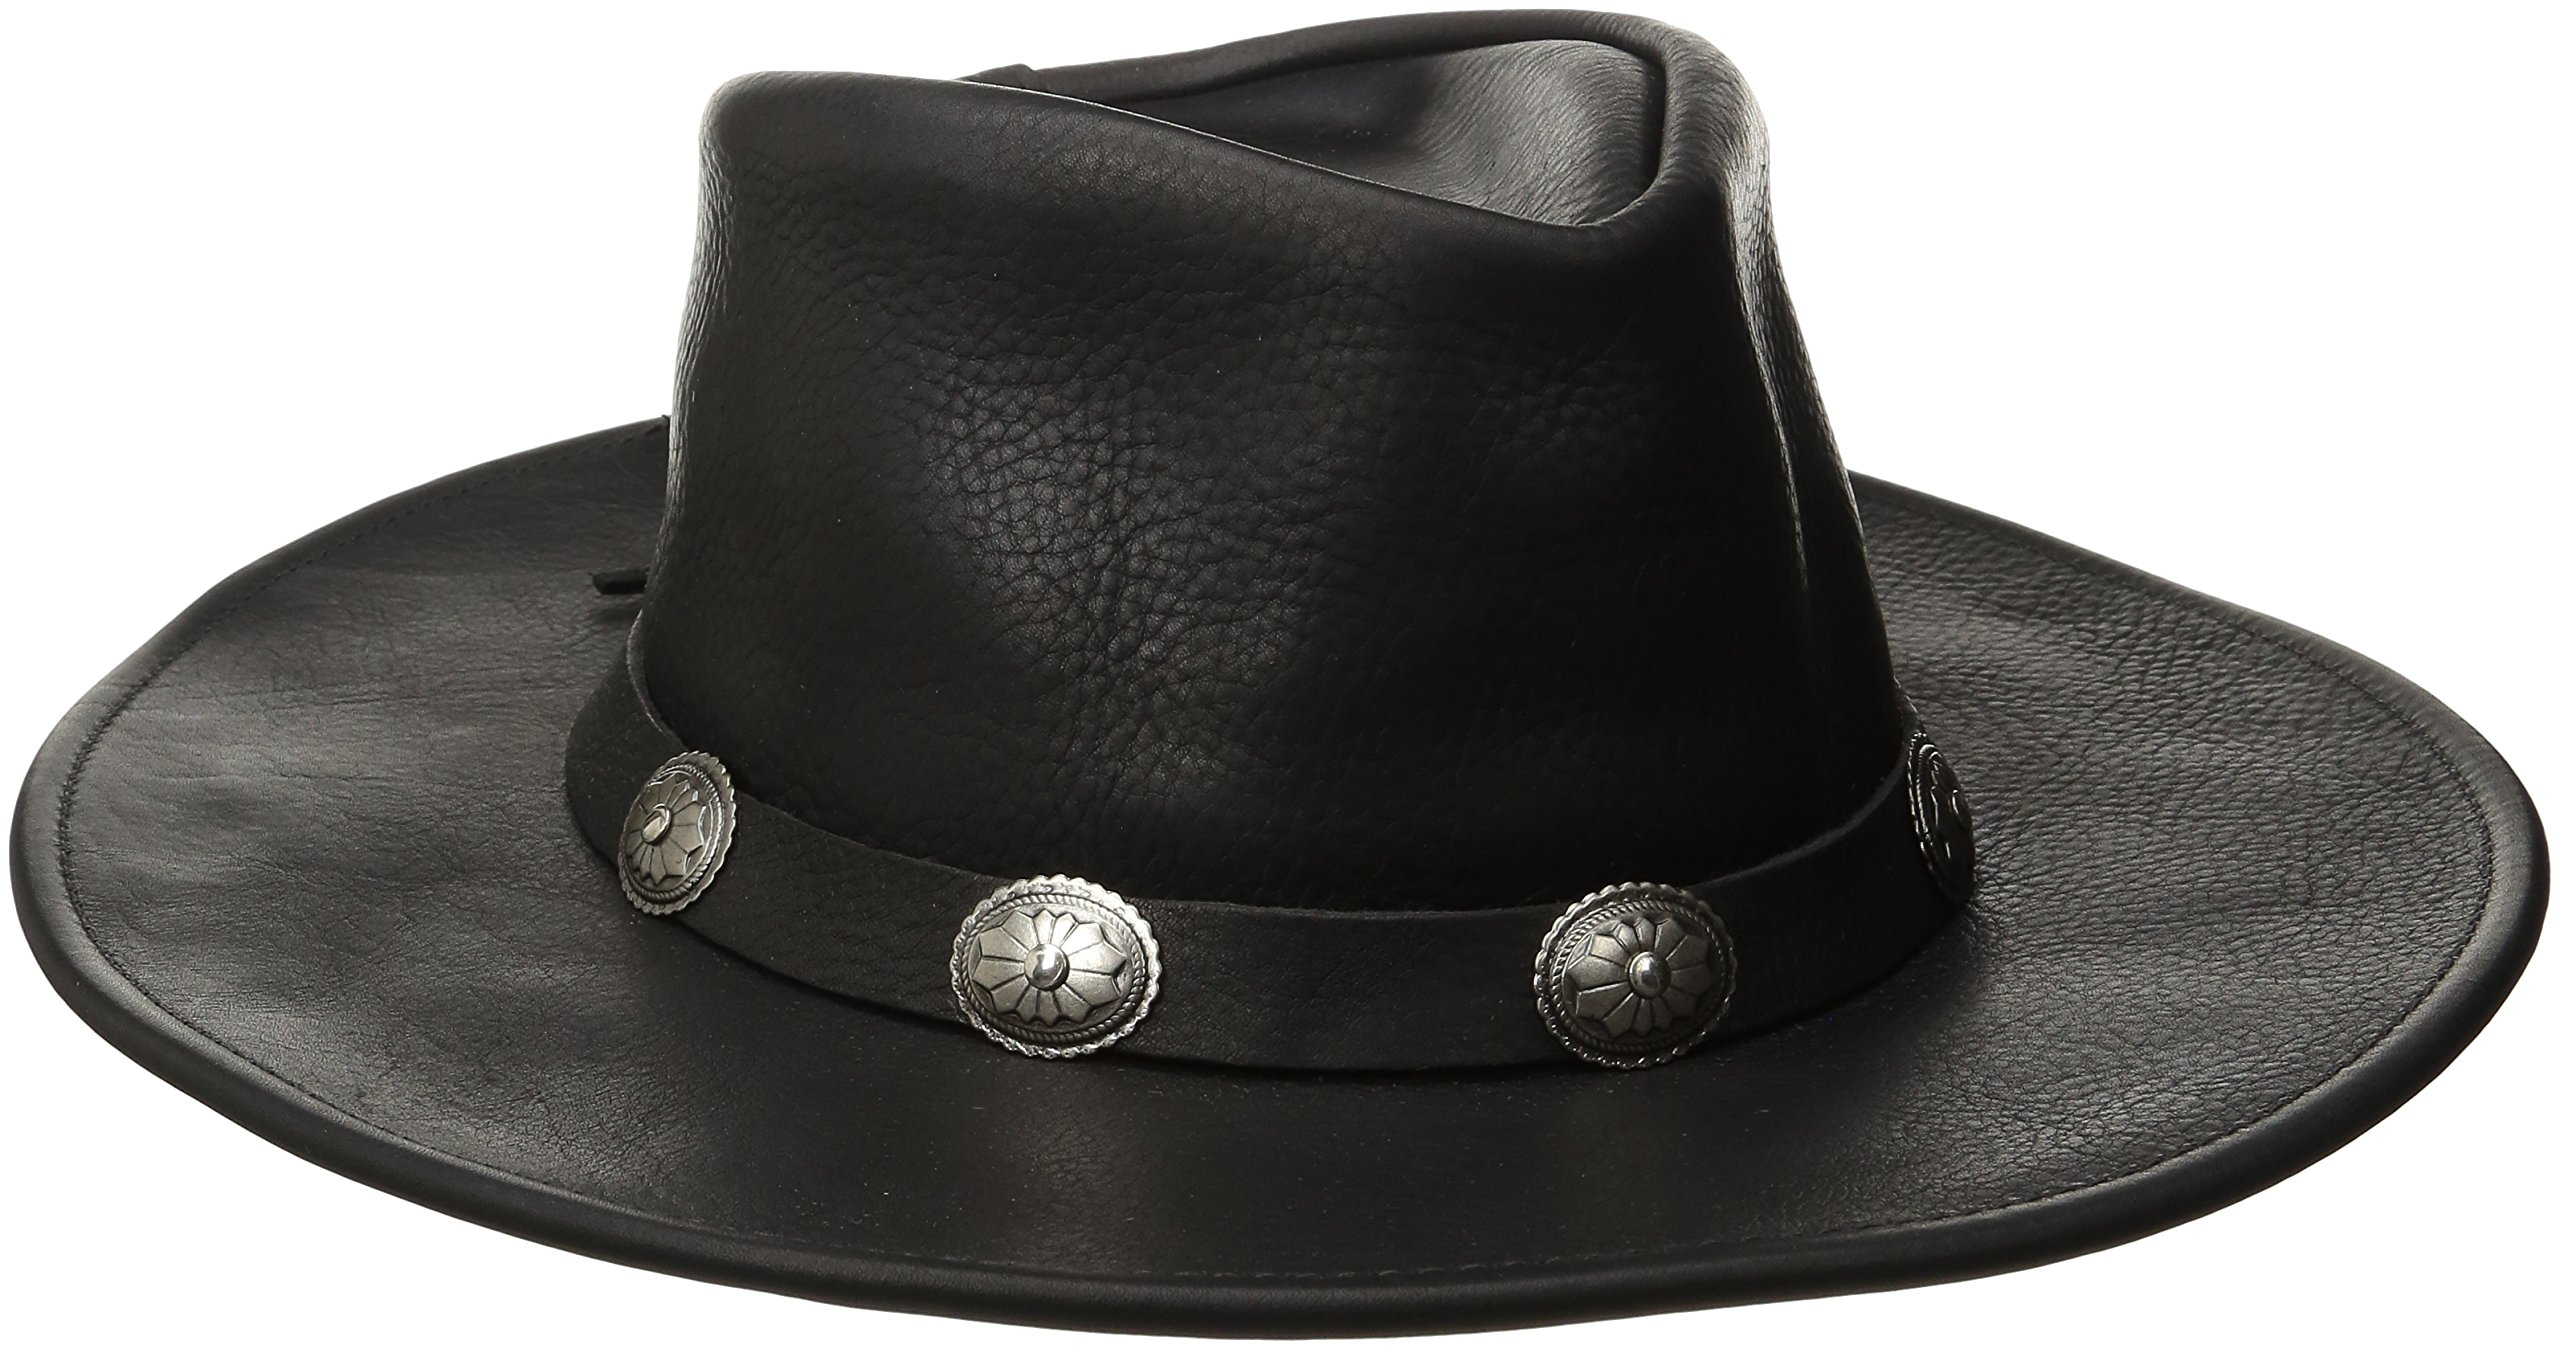 Henschel Walker, Full Grain Leather, Shapeable Brim, Conche Band, Black, Large by Henschel